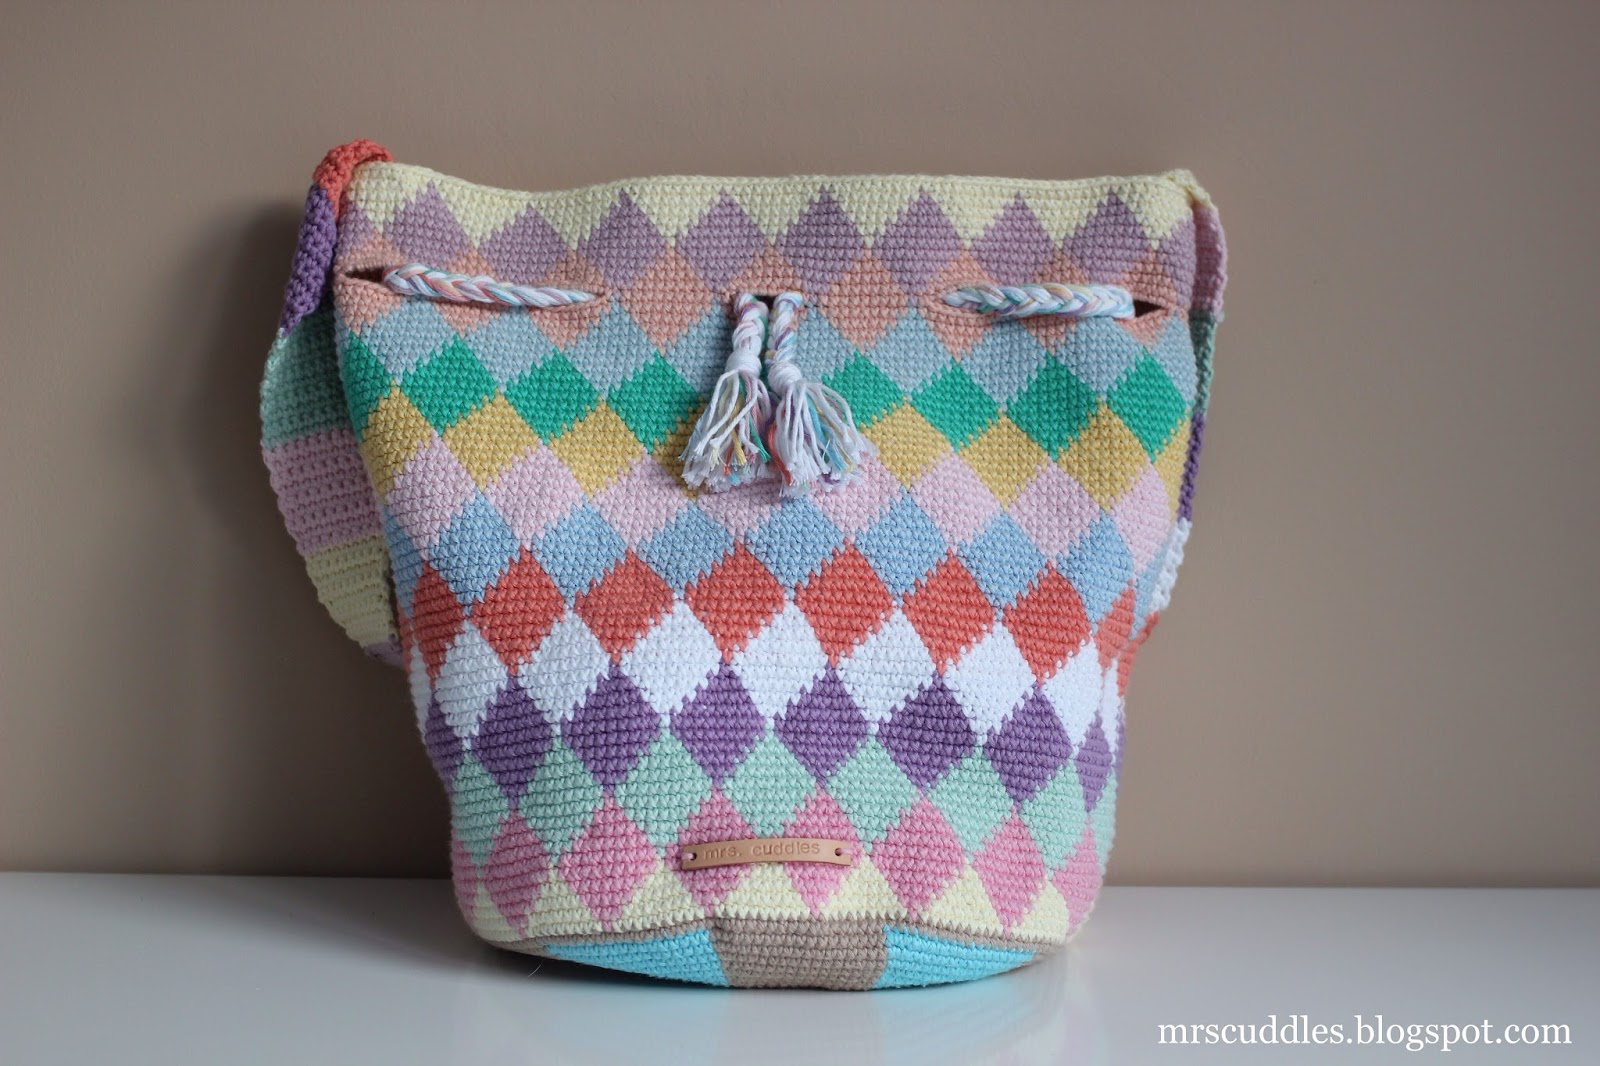 Mrs Cuddles Diamond Tapestry Bag